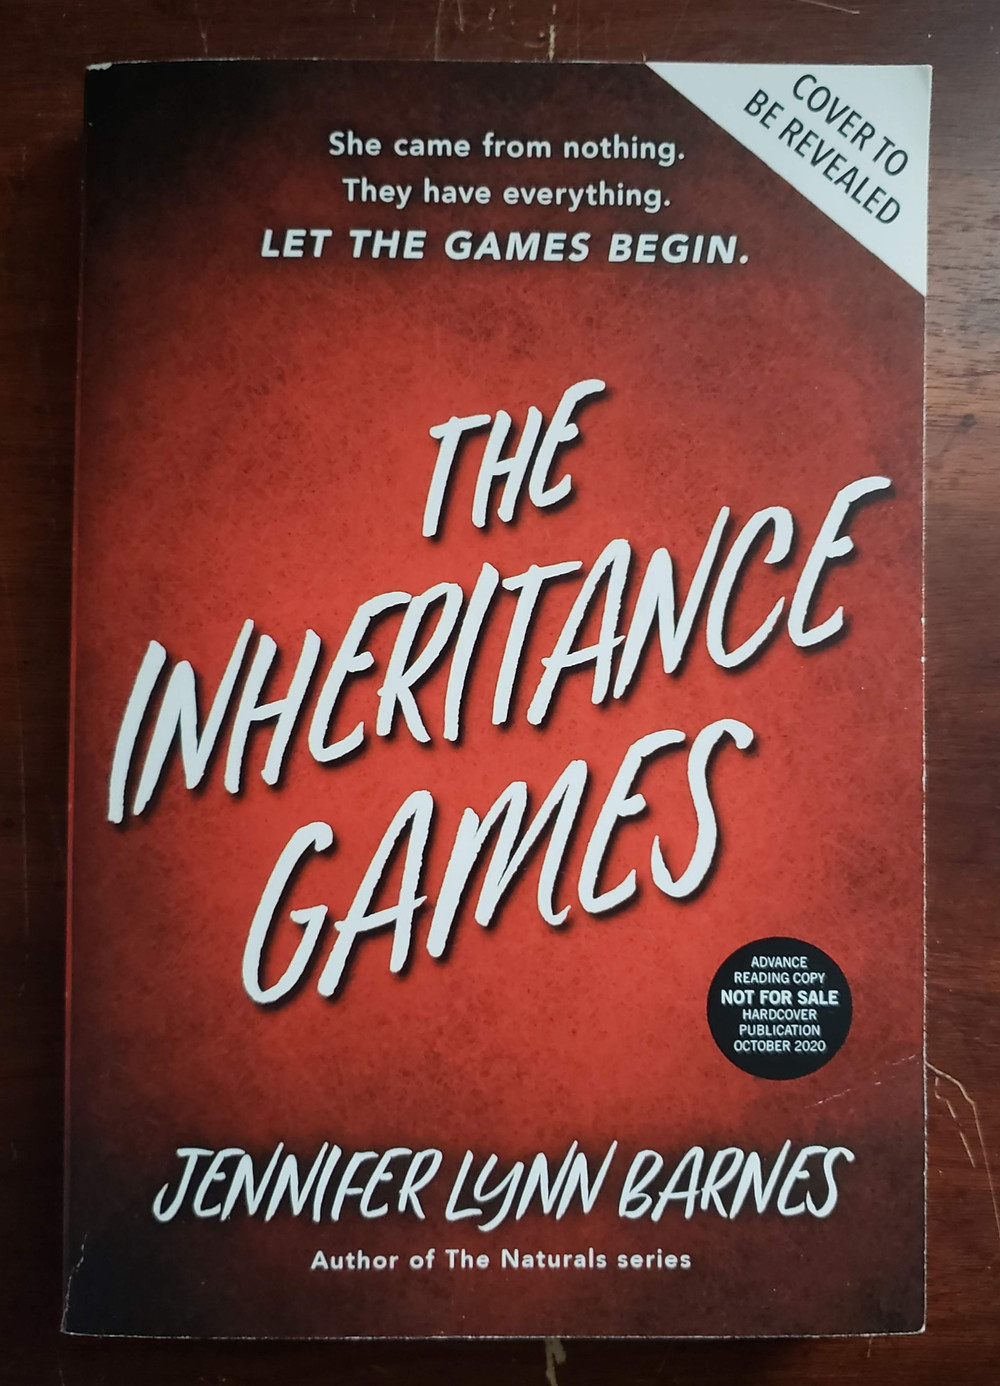 Front image of the book cover for The Inheritance Games by Jennifer Lynn Barnes.